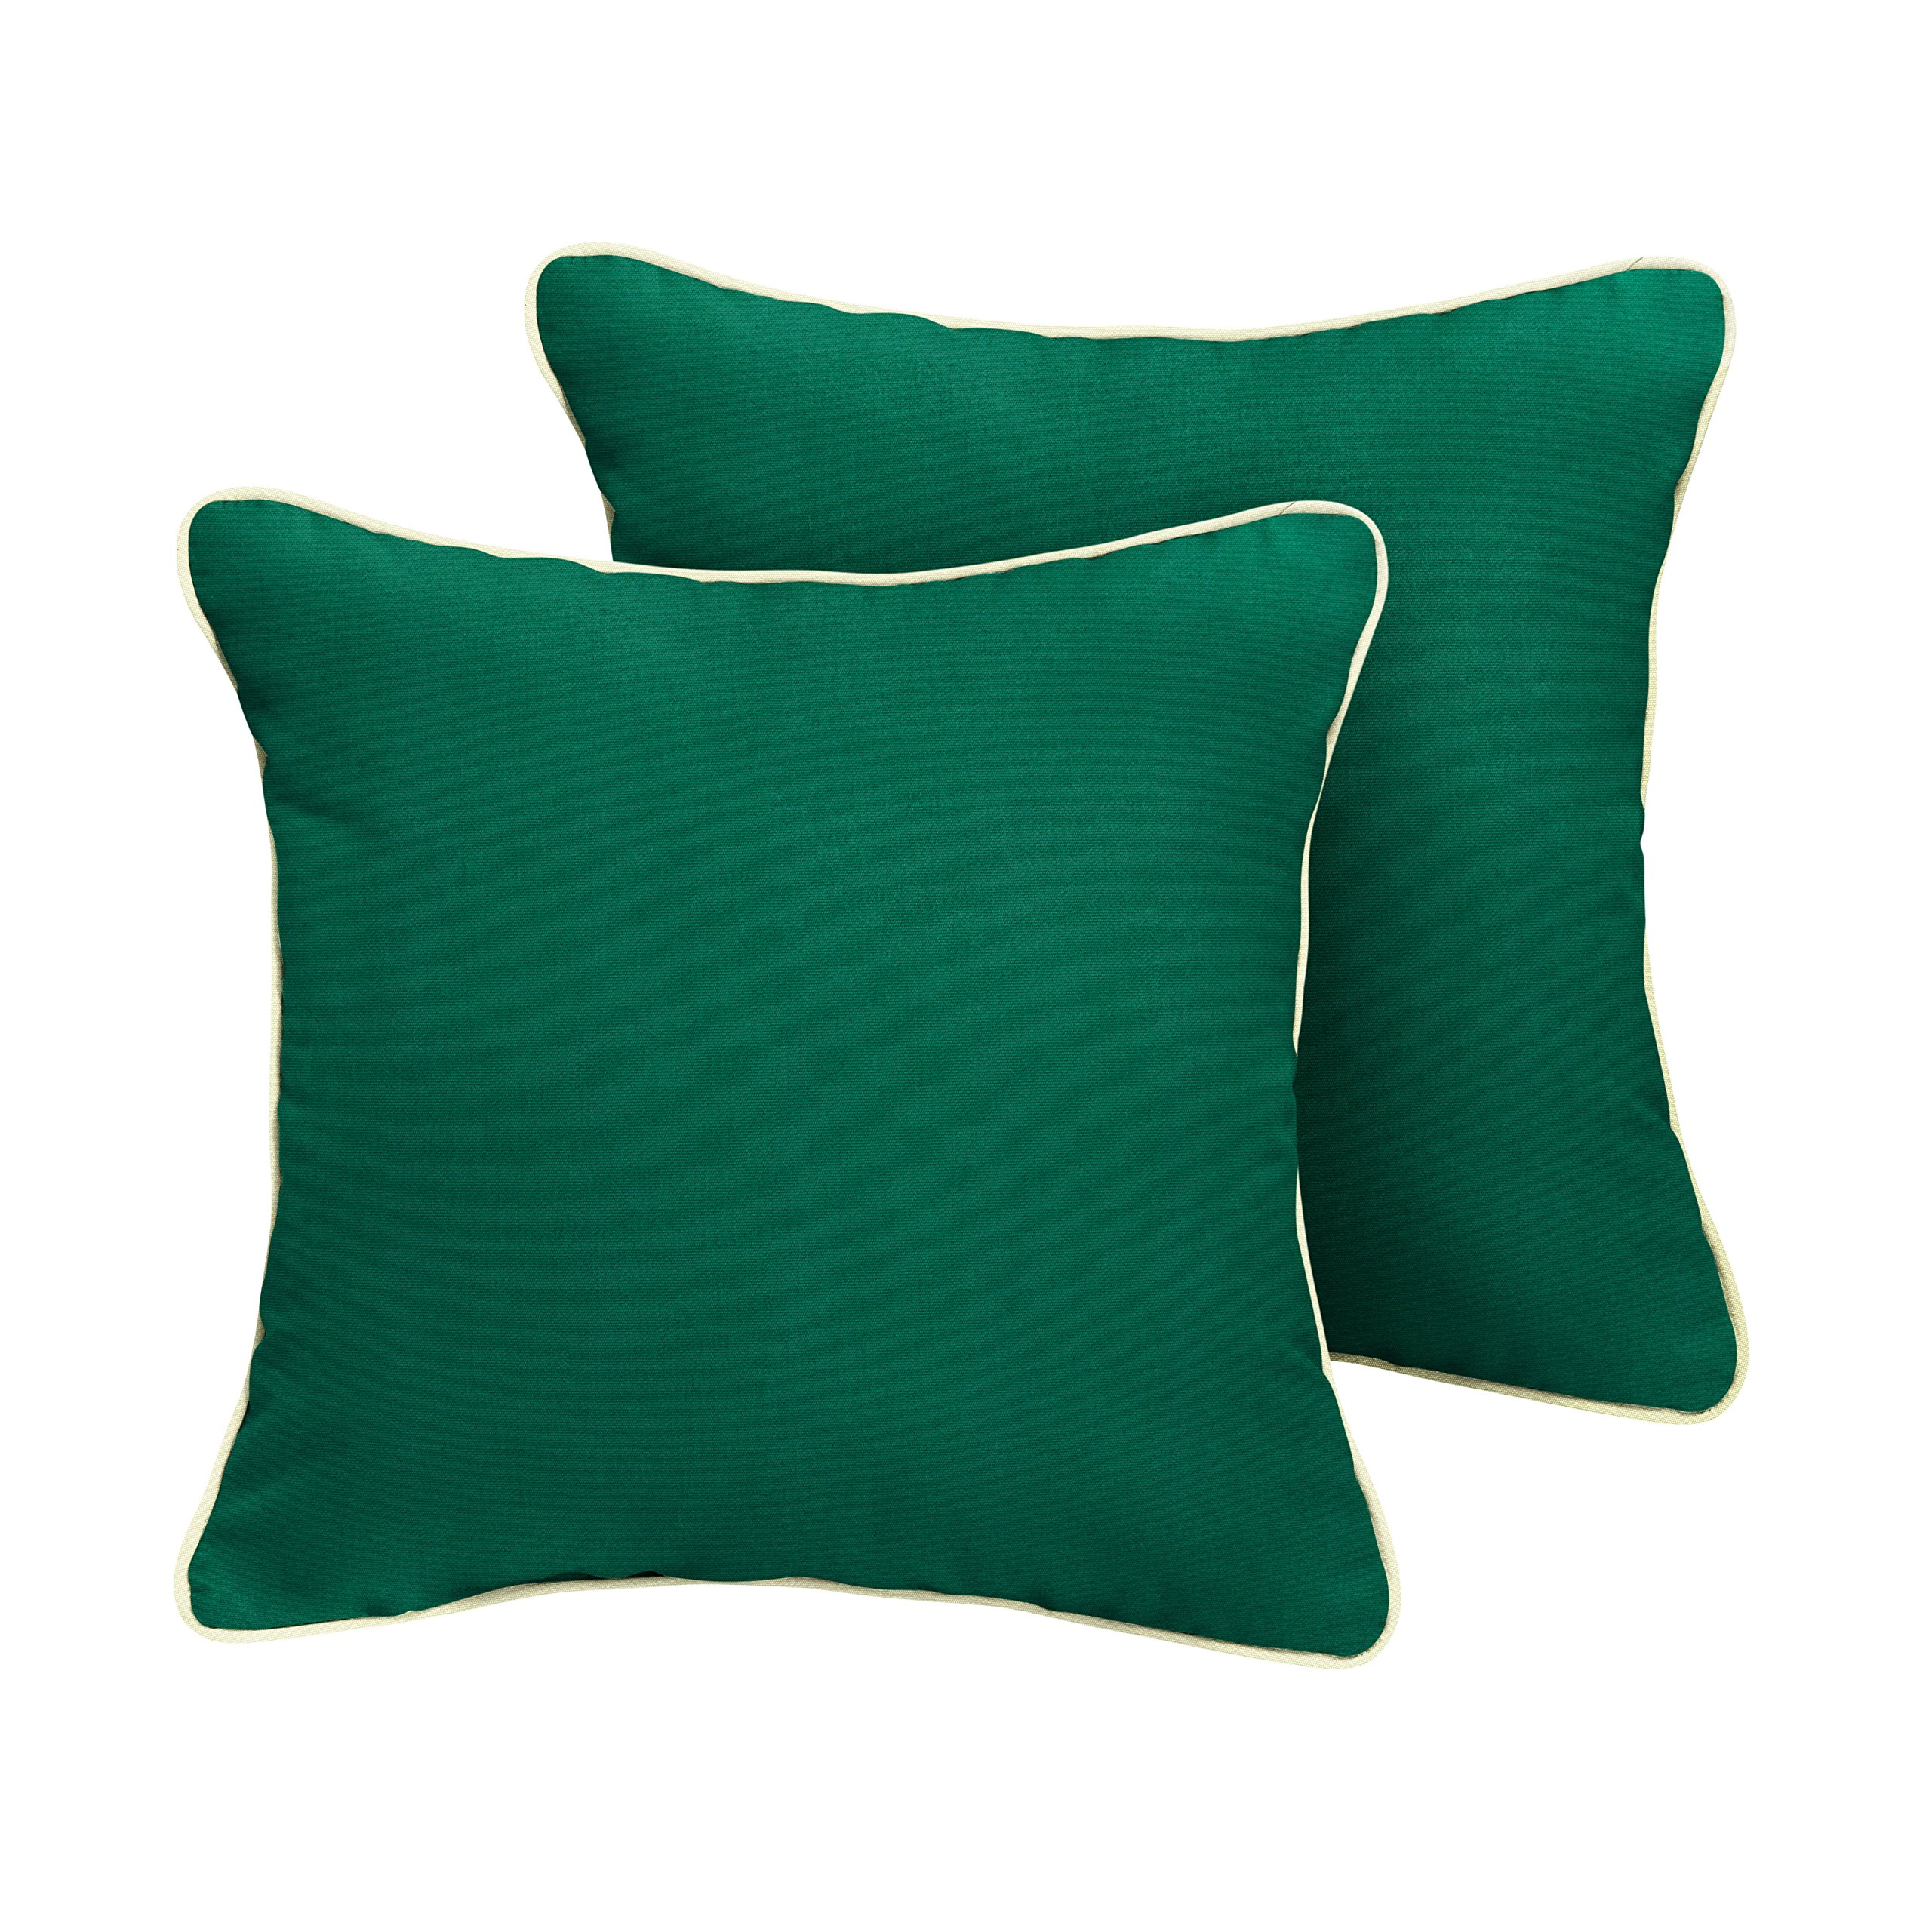 Mozaic Company Sunbrella Indoor/ Outdoor Corded Pillows, Canvas Forest Green and Canvas Natural, Set of 2